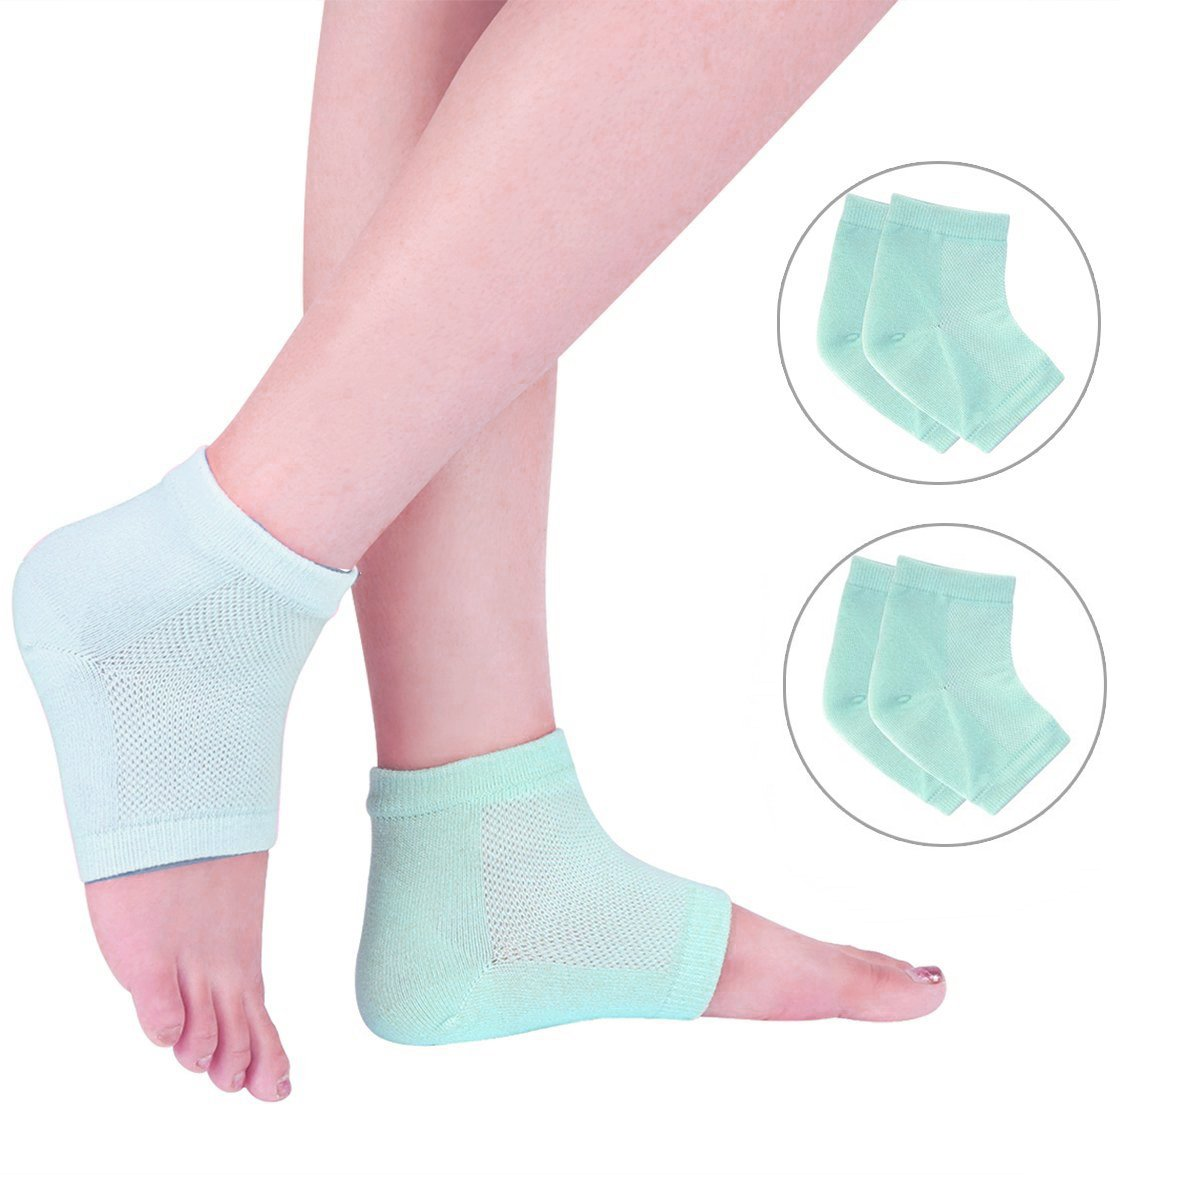 EXPER Vented Moisturizing Gel Heel Socks for Treatment Women Men's Dry Cracked Heels Skin Painful Ankle Gel Heel Sleeves Pack of 2 Pair (Green)